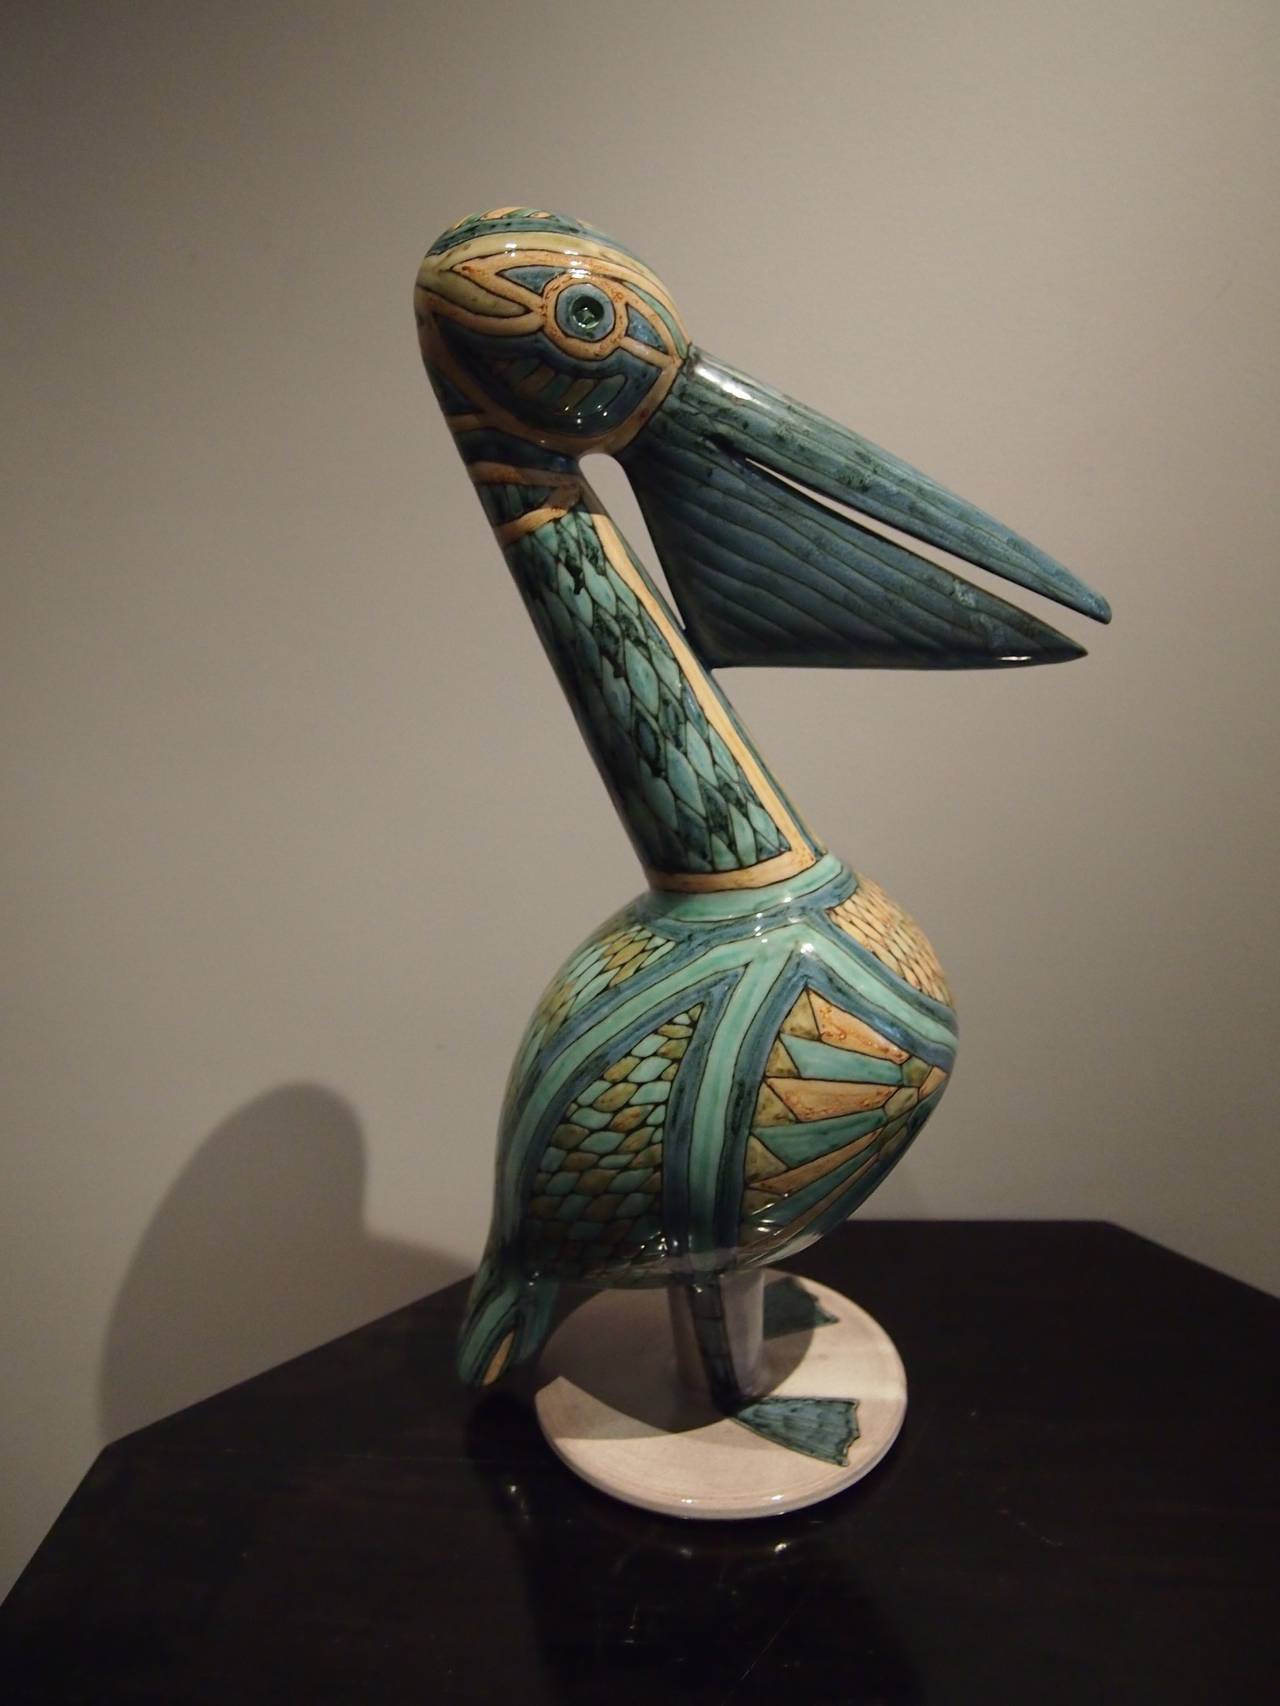 Mid-20th Century Pelican Ceramic Sculpture with Cloisonné Enamel, French, 1960 For Sale